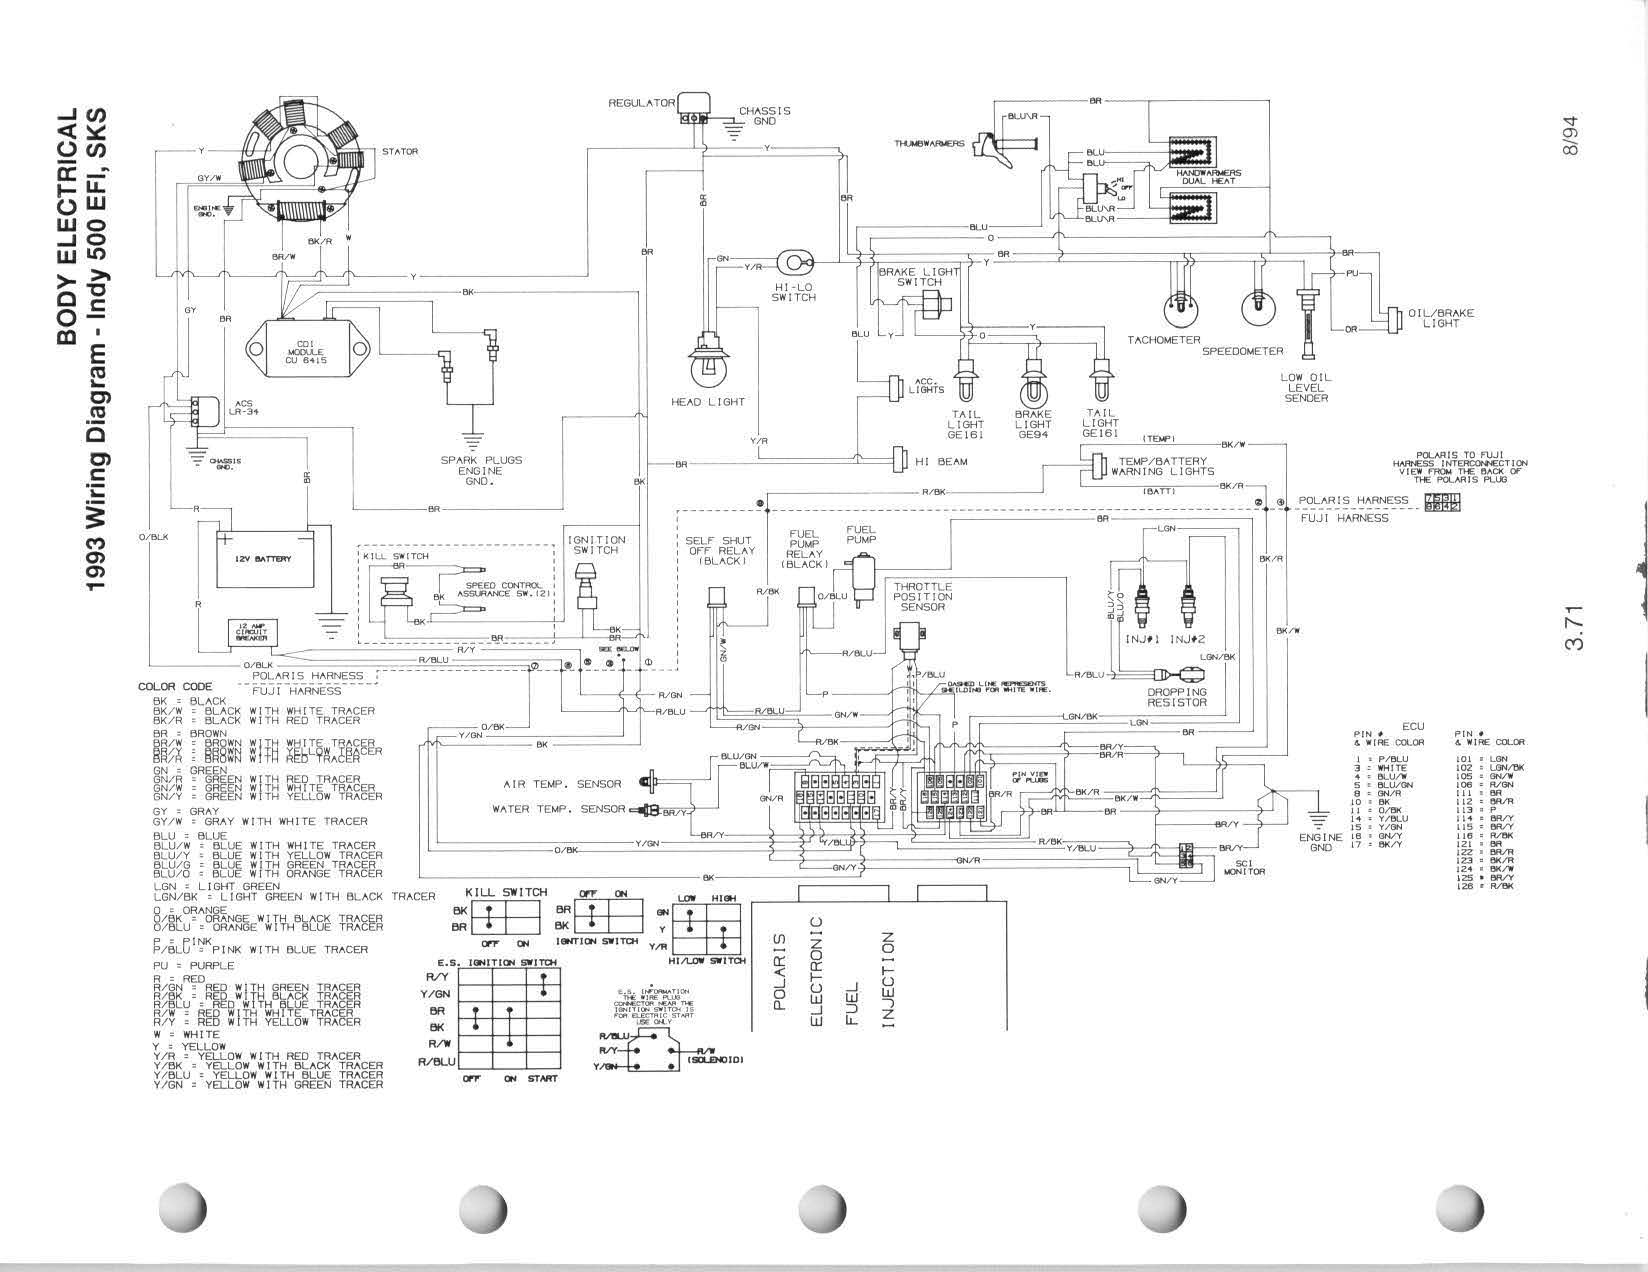 2004 polaris ranger 500 wiring diagram Collection-Full Size of Wiring Diagram Polaris Ranger Xp Wiring Diagram Picture Ideas 21 2007 20-o